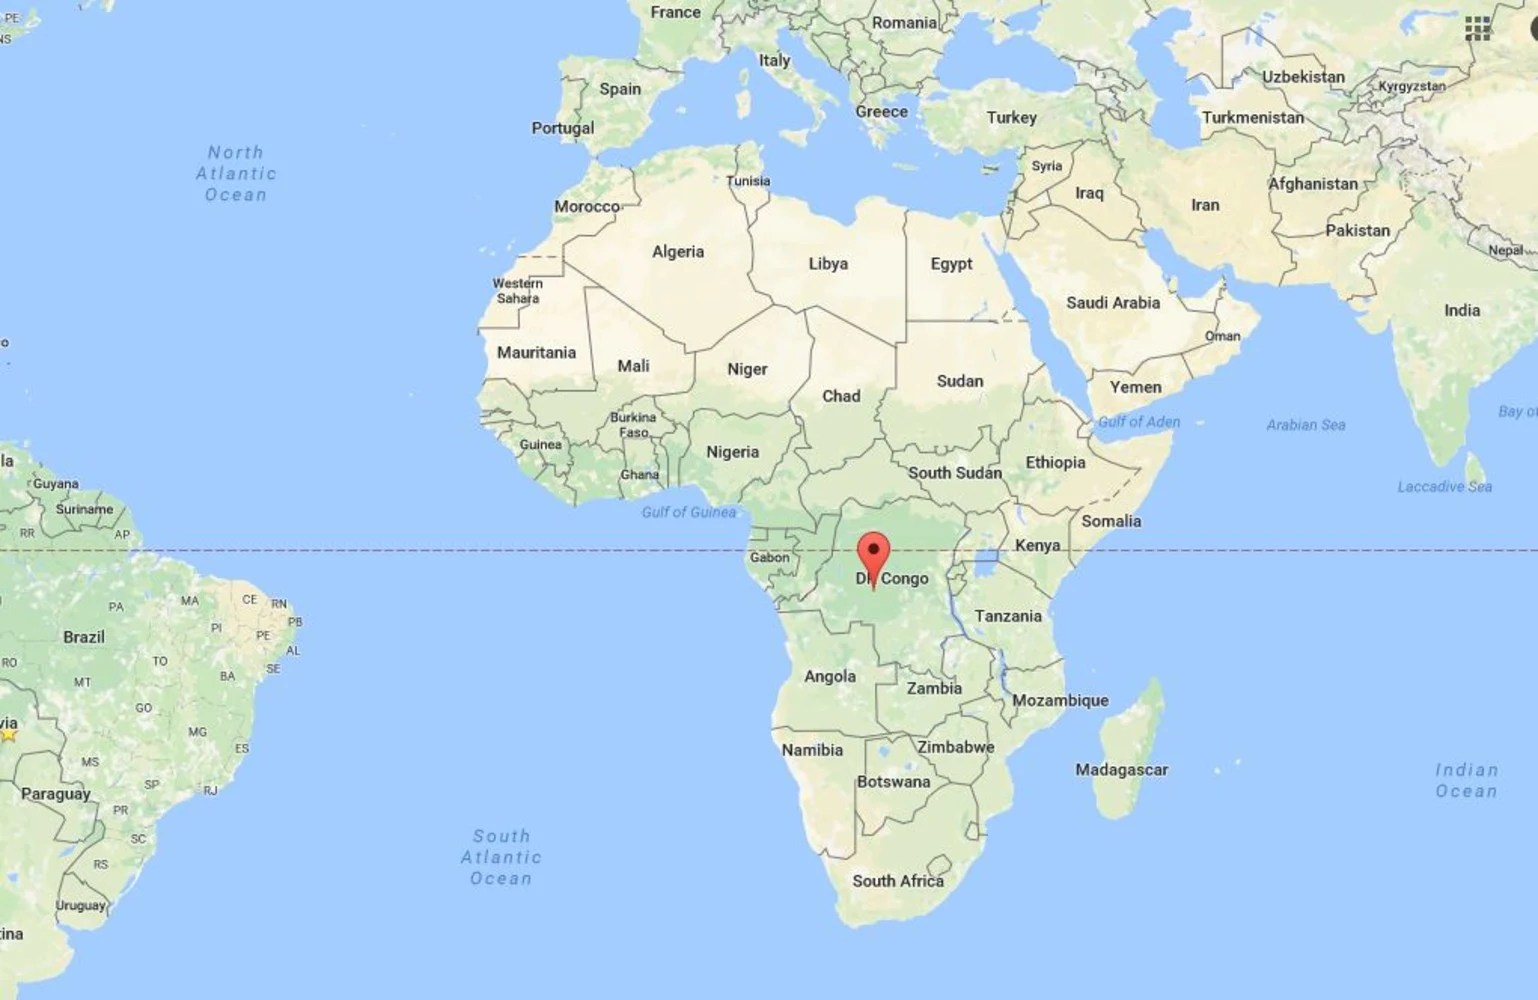 Image Map showing the location of the Democratic Republic of Congo